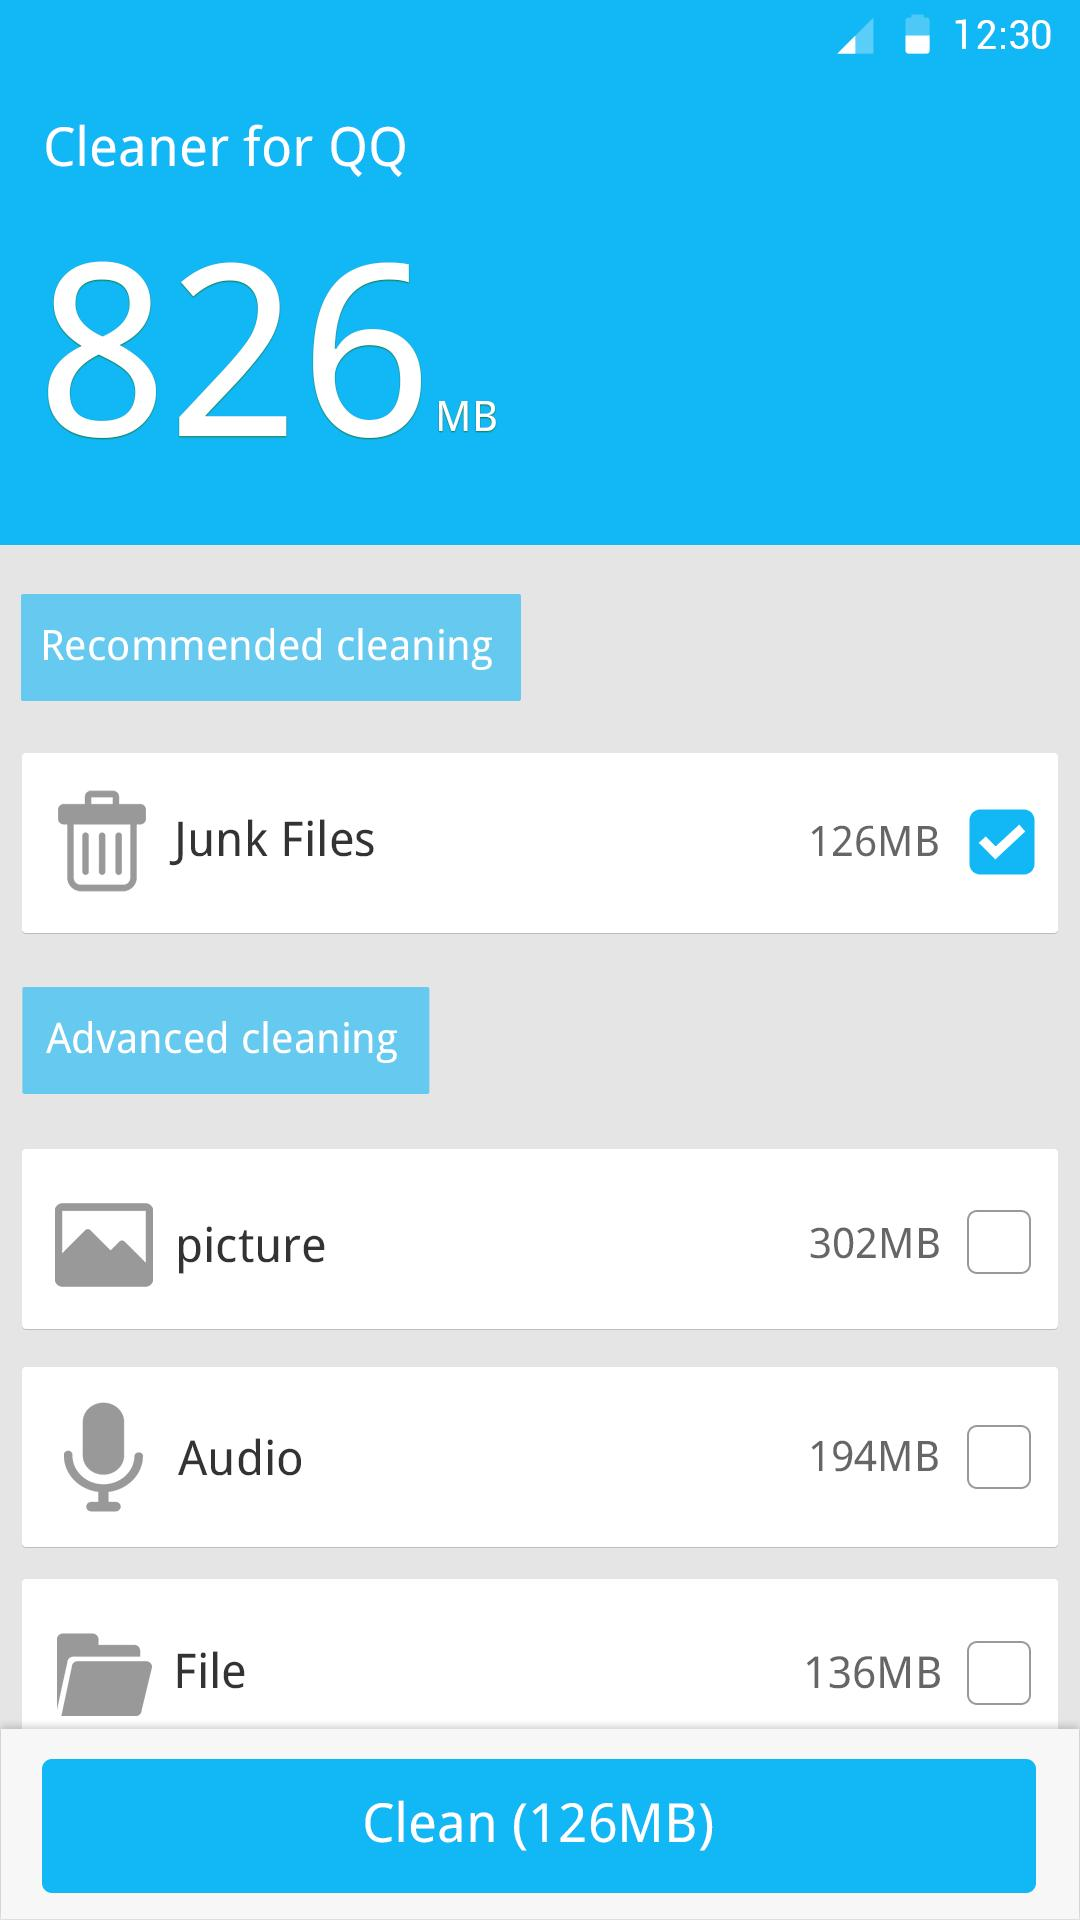 Cleaner For Qq Professional For Android Apk Download